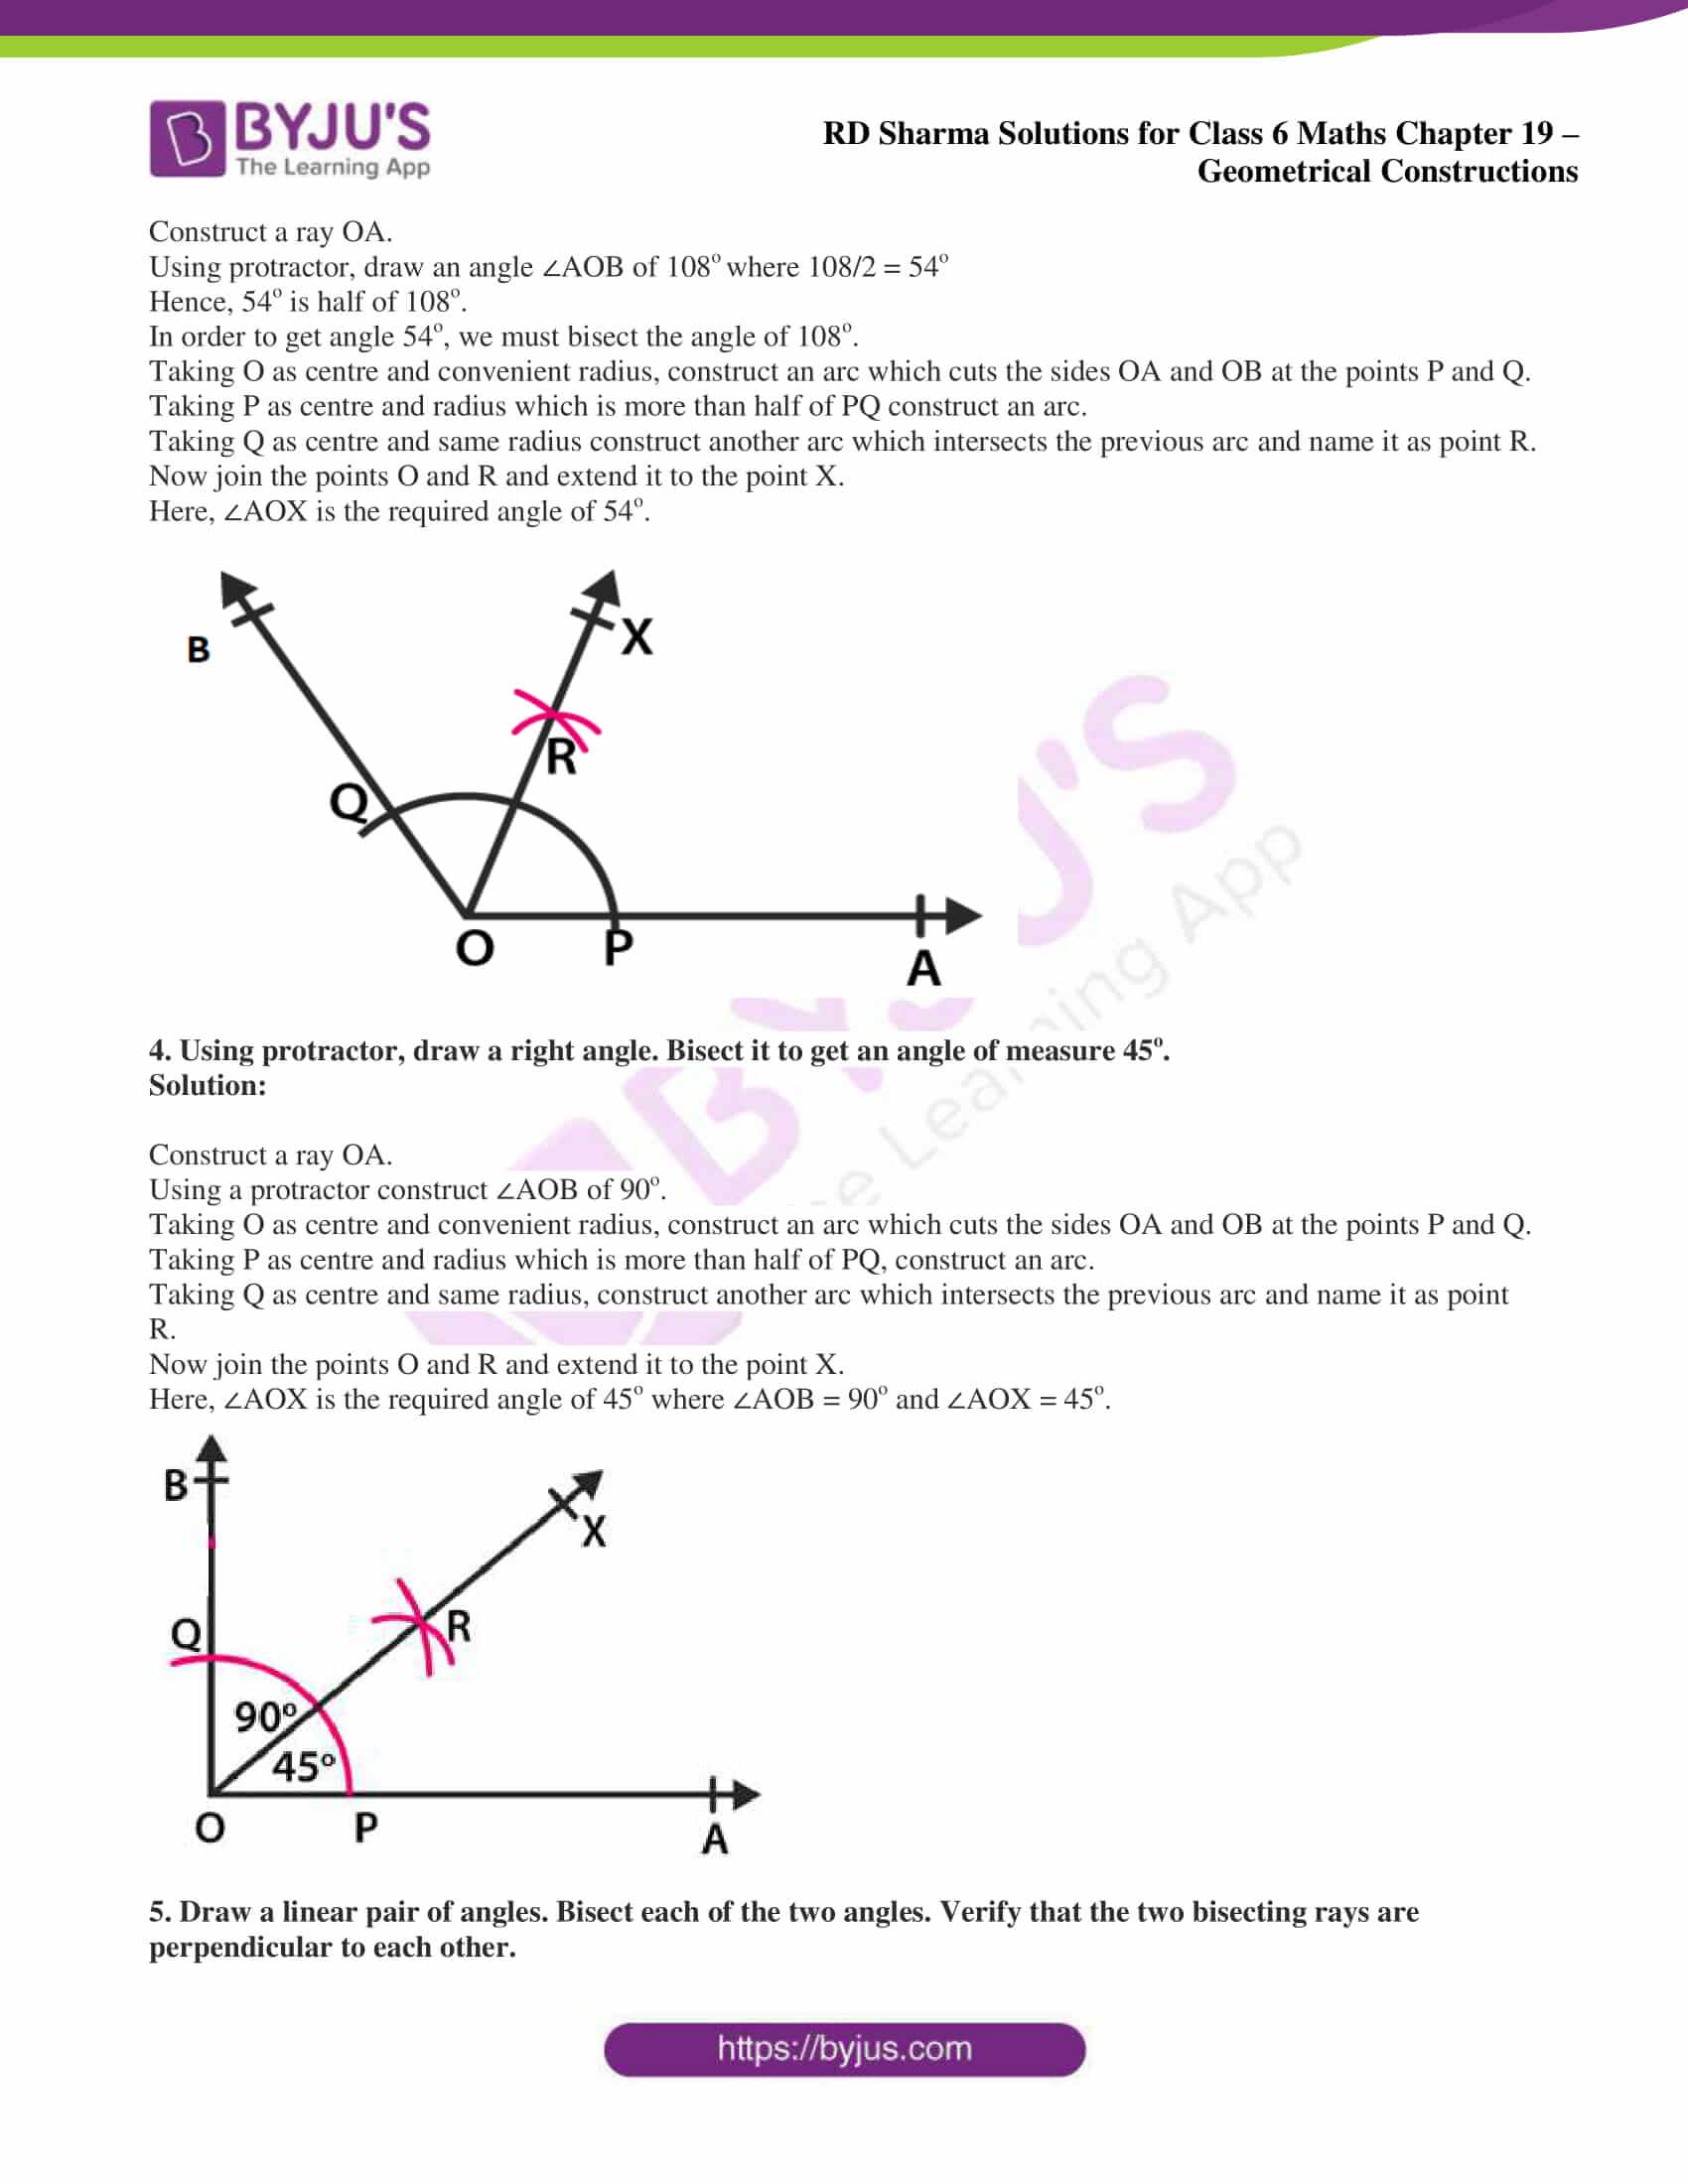 rd sharma solutions nov2020 class 6 maths chapter 19 exercise 5 2